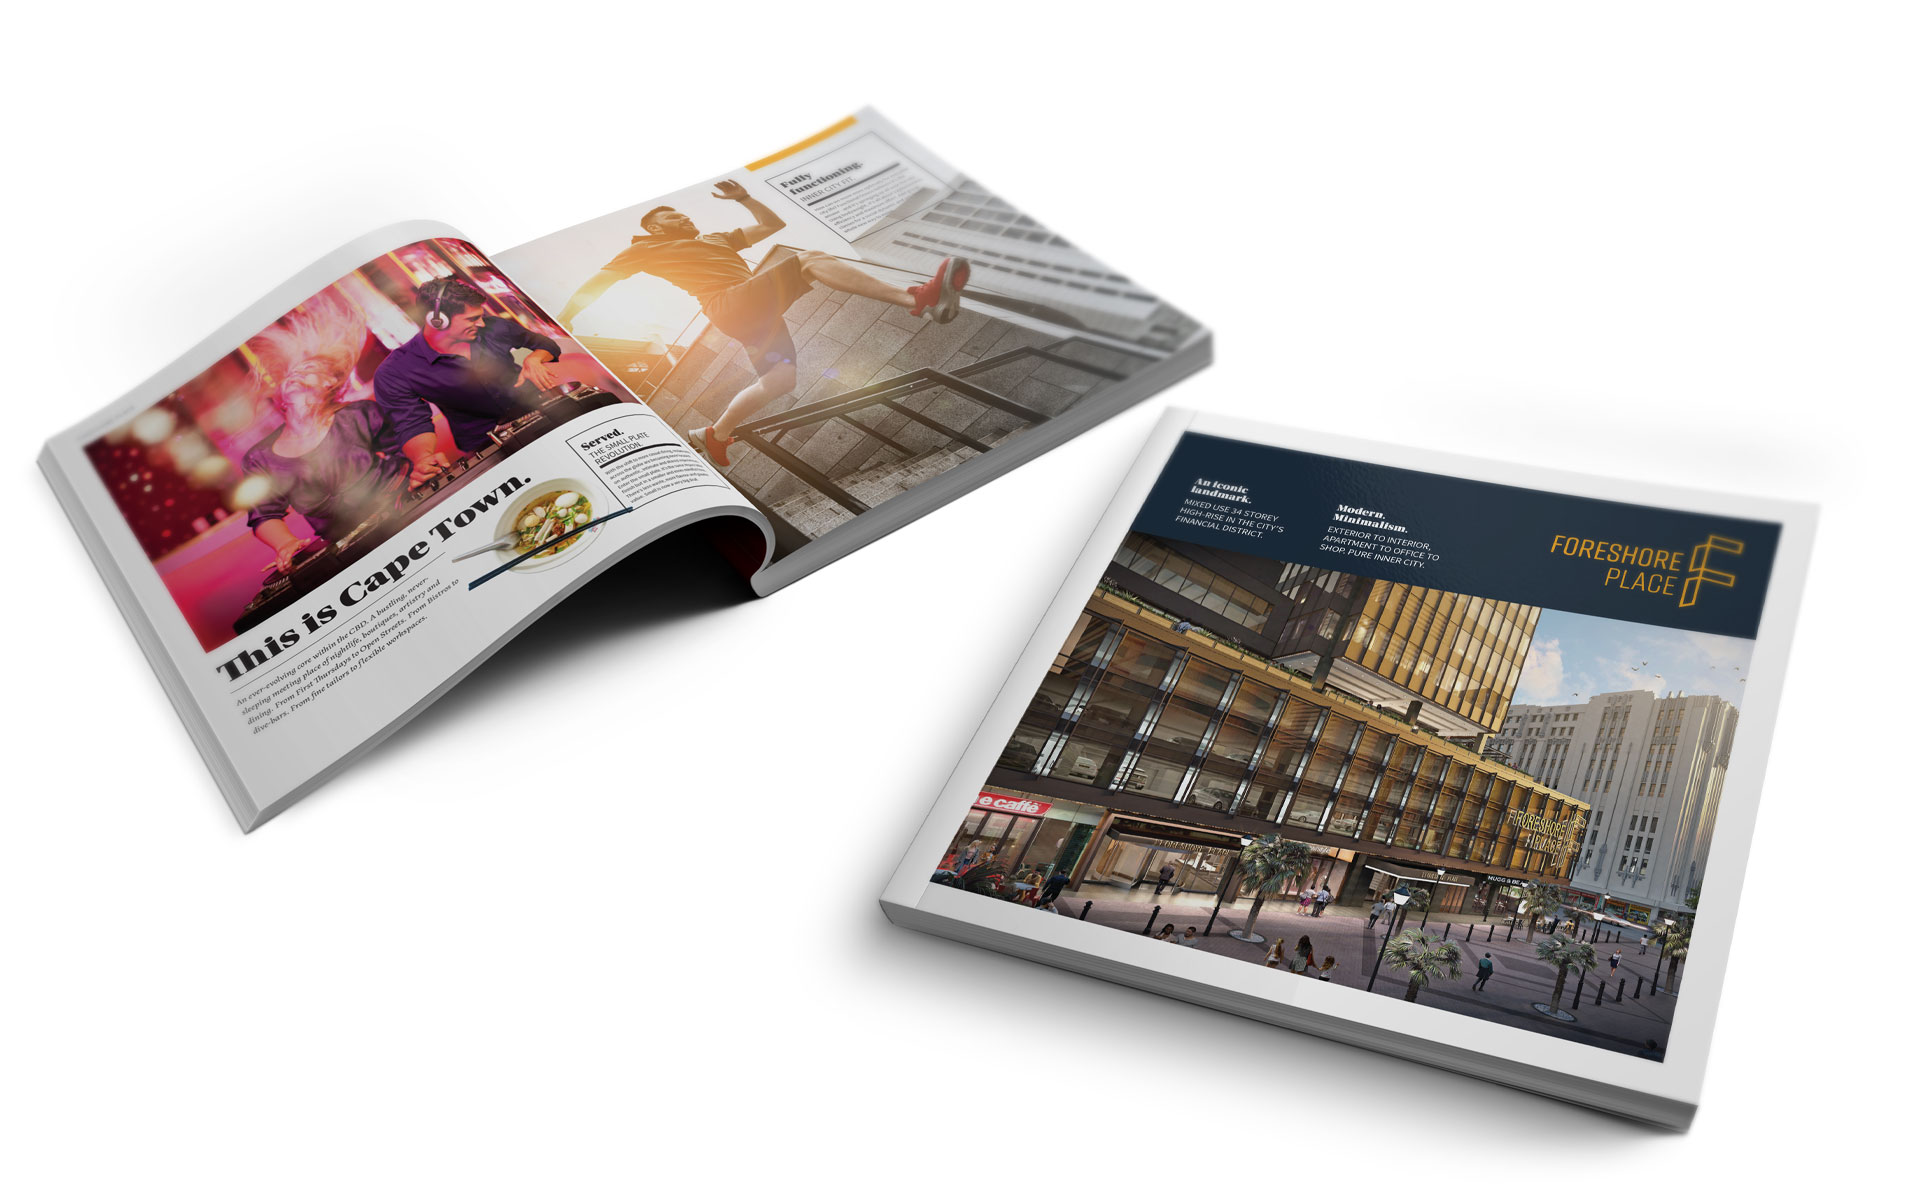 Foreshore Place • Architectural marketing campaign case